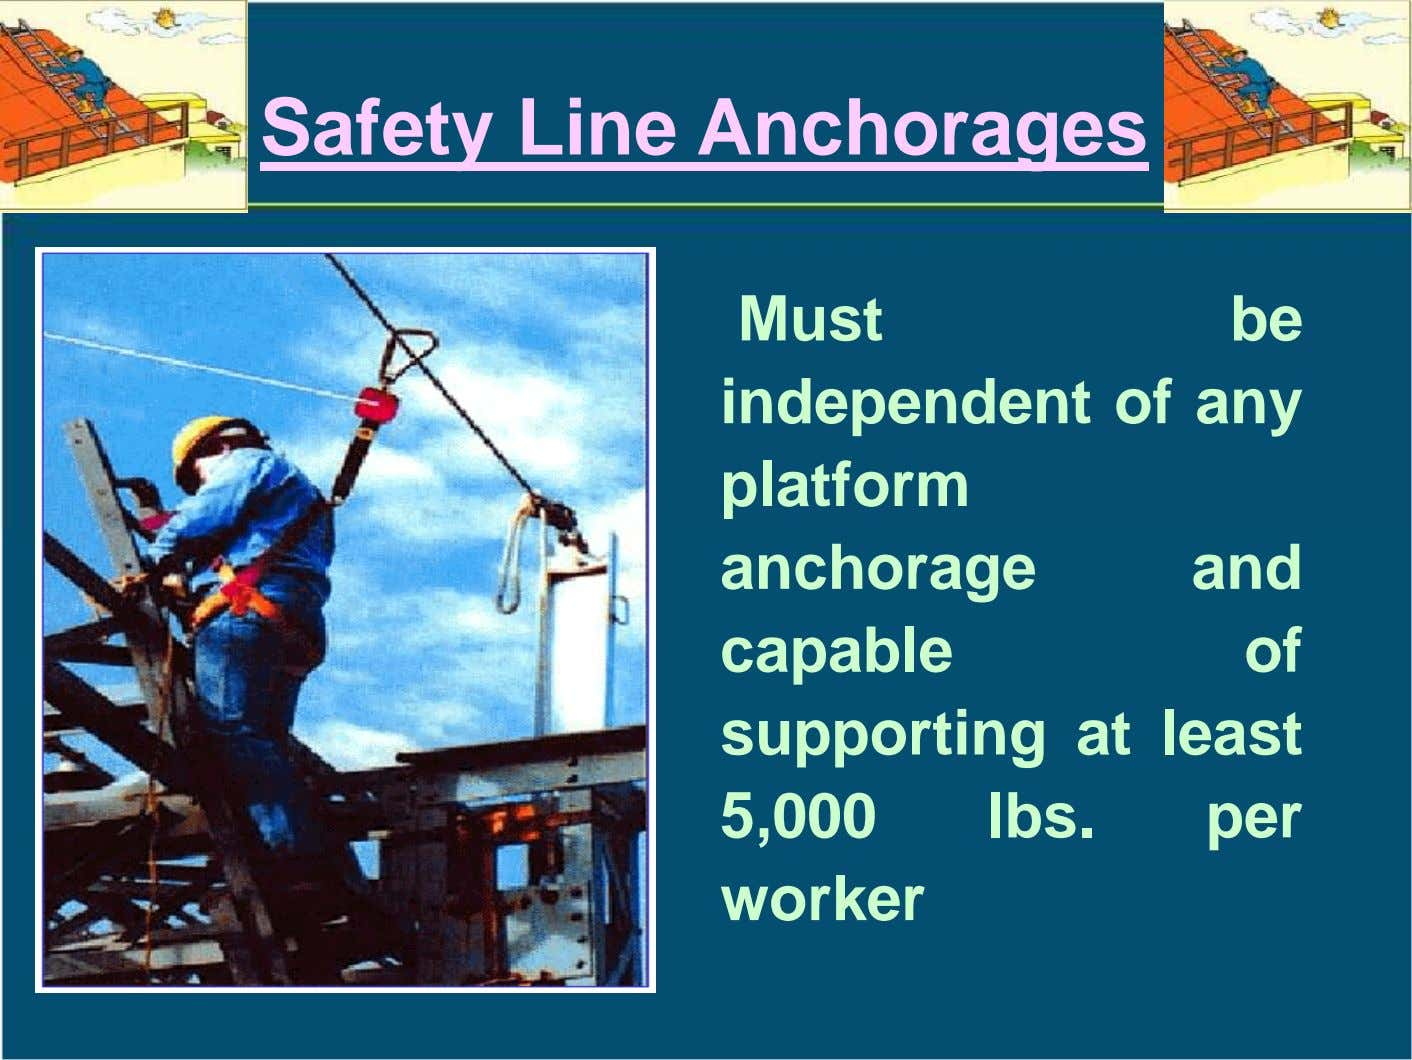 Safety Line Anchorages Must be independent of any platform anchorage and capable of supporting at